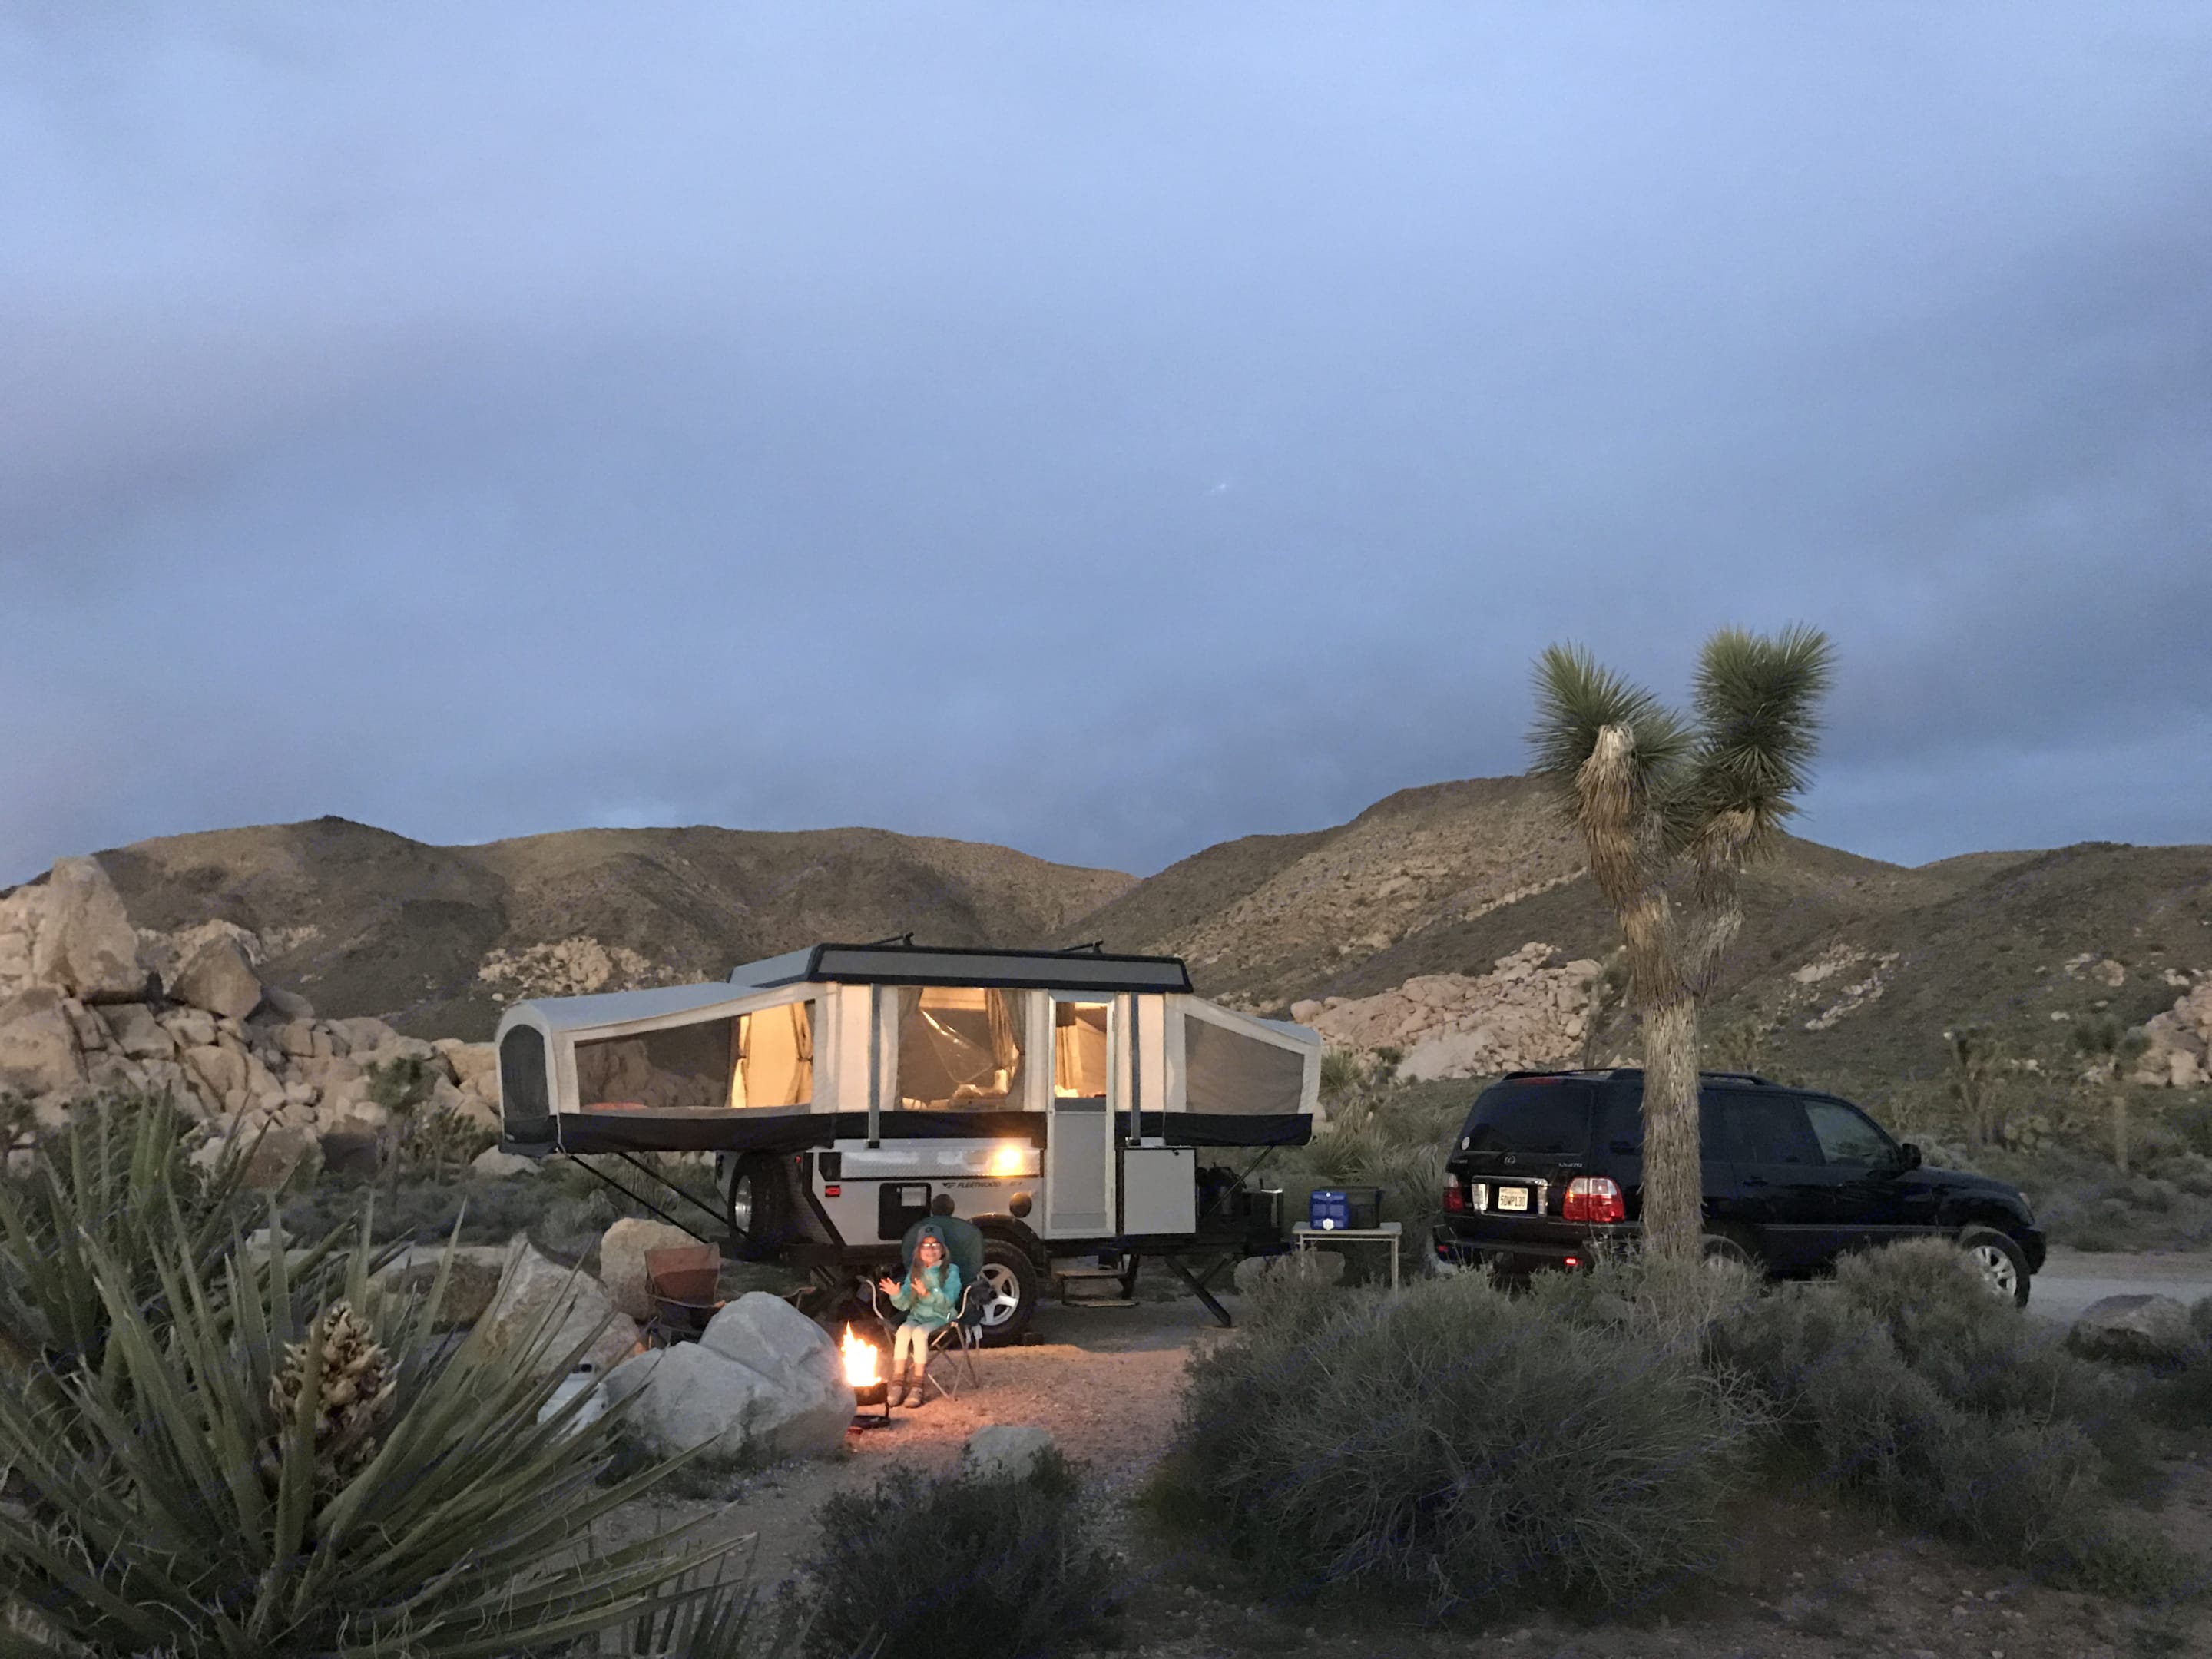 What I love most about my trailer... its not an eye sore in the beautiful landscape of Ryan Campground, Joshua tree. Fleetwood Evolution 1 (E1) 2008